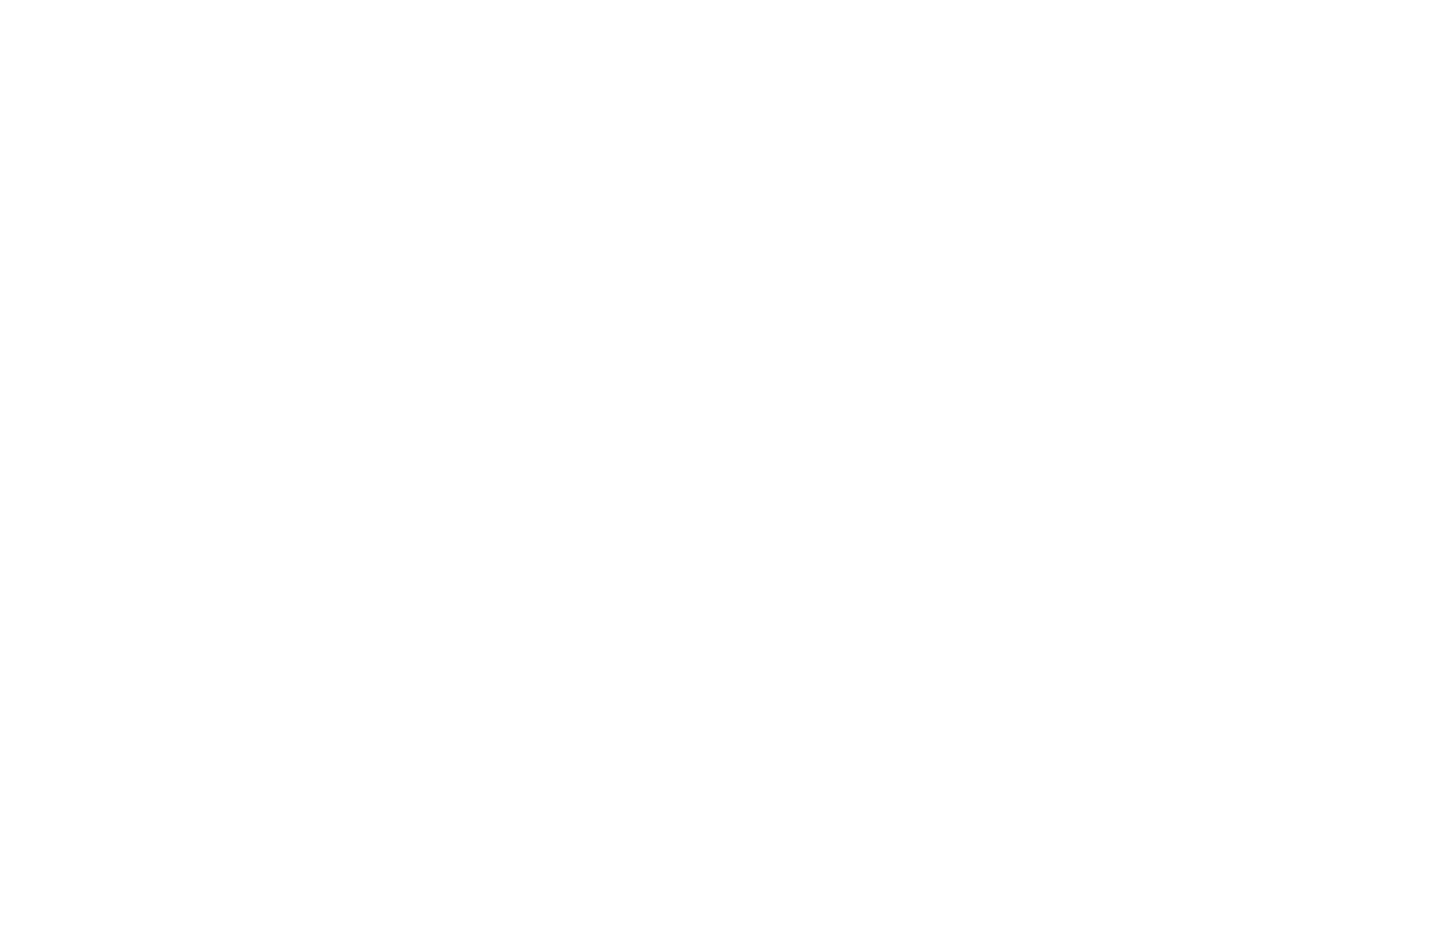 Official Selection Pan African Film Festival 2020